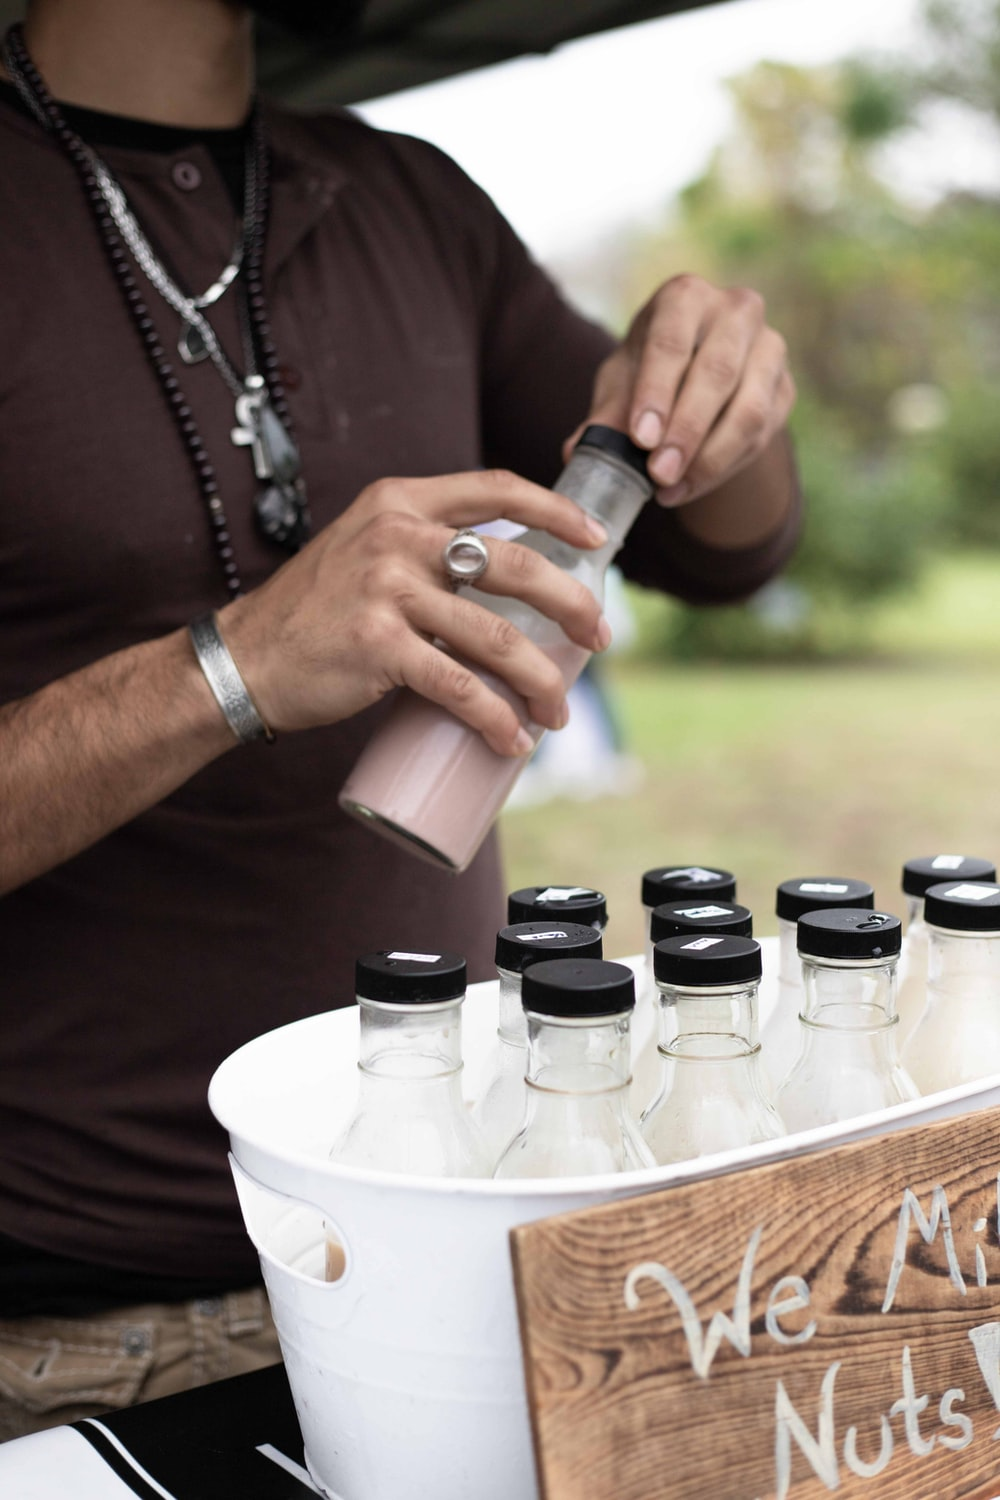 person holding black and white plastic bottles